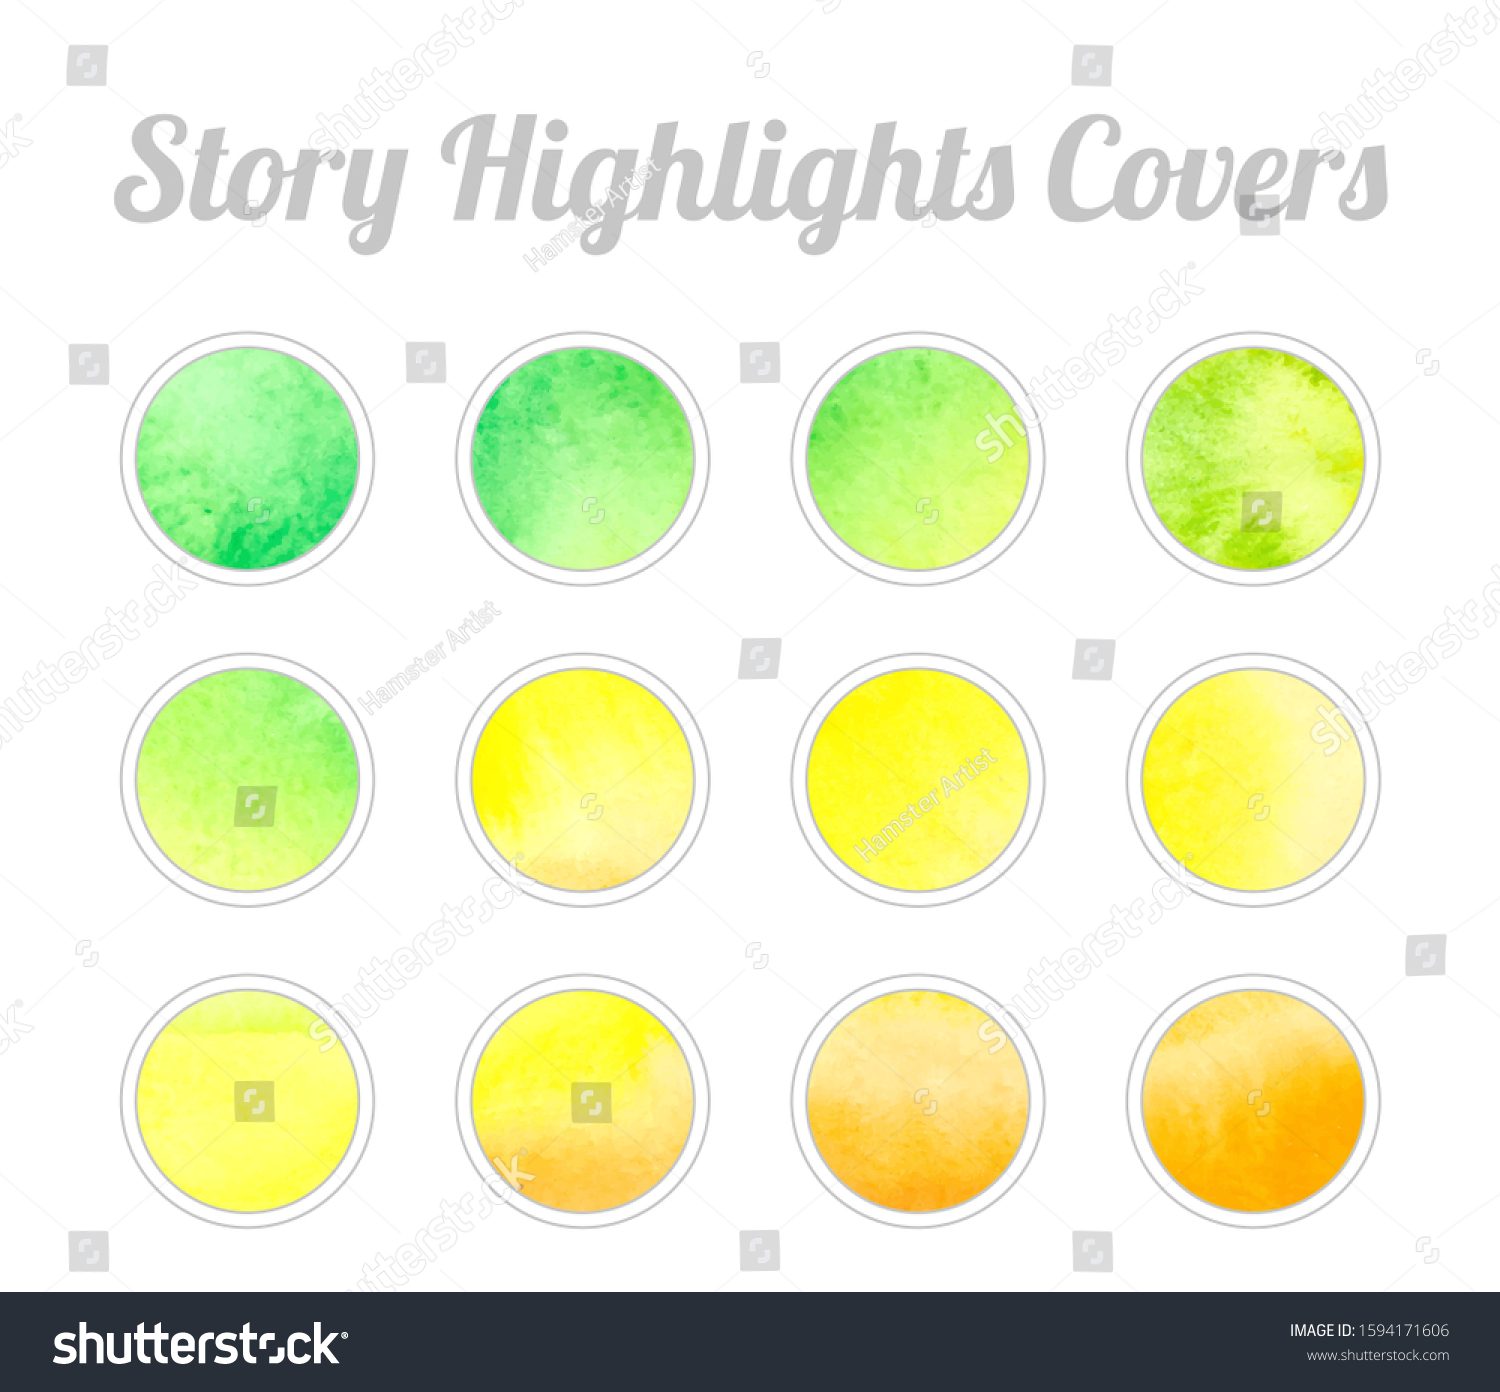 Set Instagram Story Highlights Covers Icons Stock Vector Royalty Free 1594171606